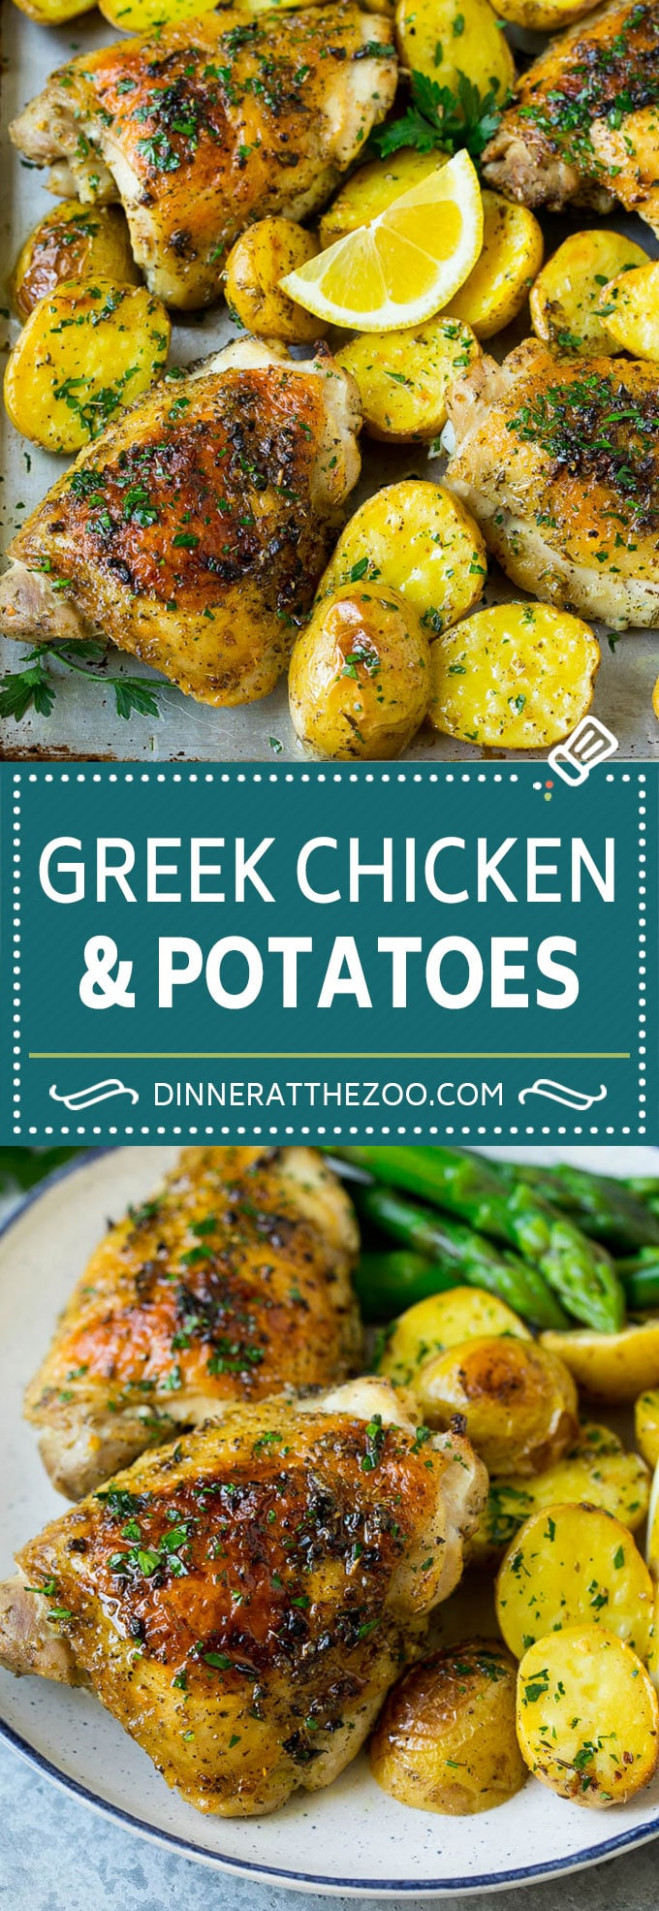 Greek Chicken And Potatoes - Dinner At The Zoo - Dinner At The Zoo Chicken Recipes